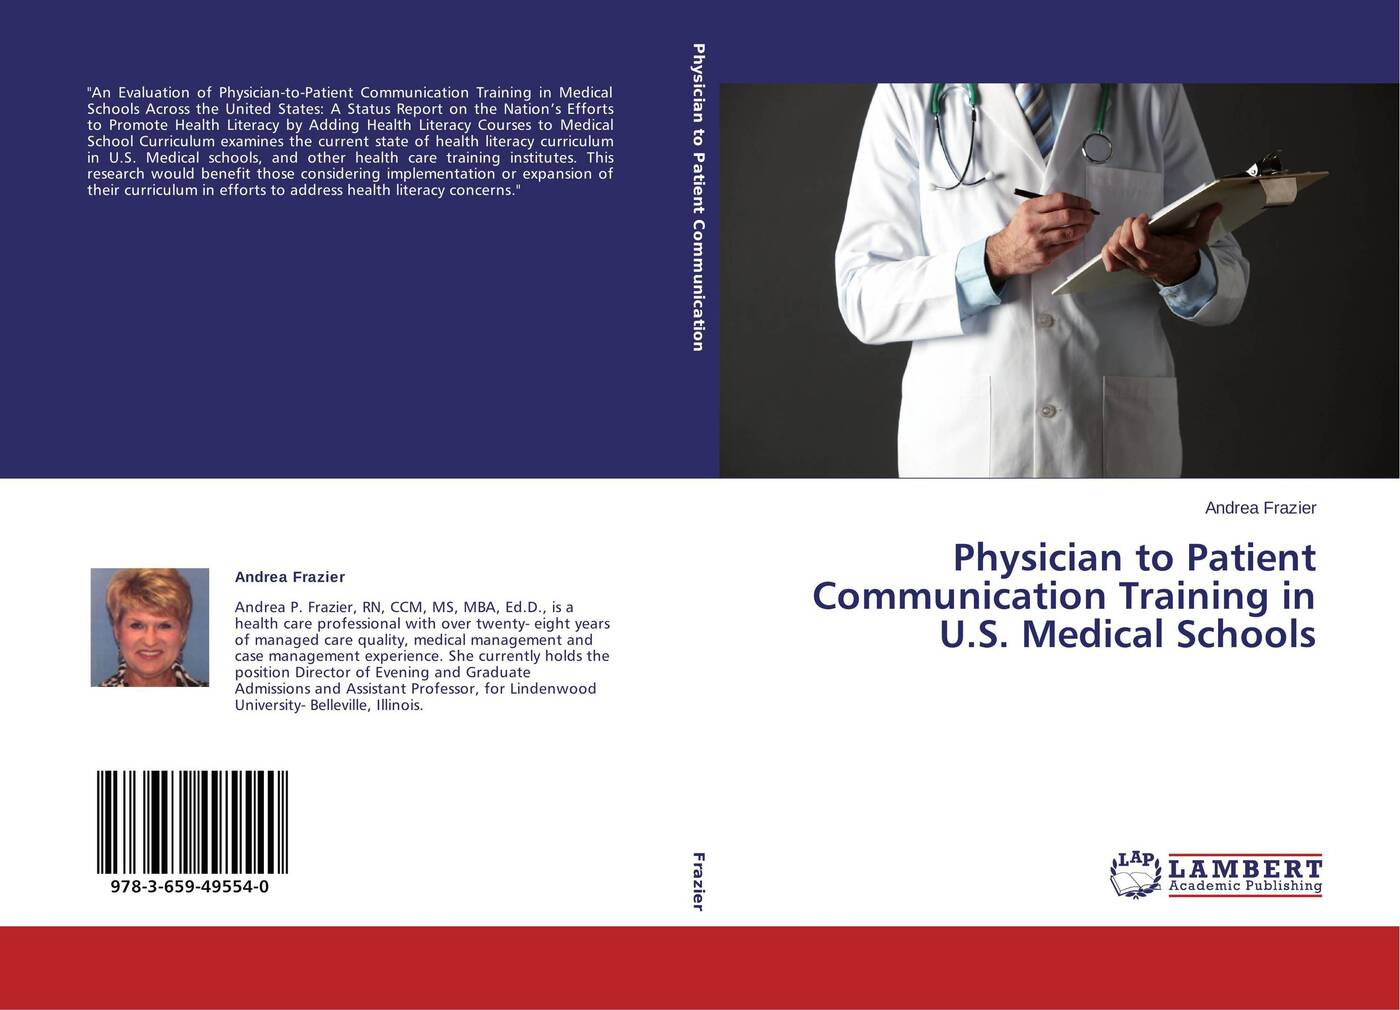 лучшая цена Andrea Frazier Physician to Patient Communication Training in U.S. Medical Schools